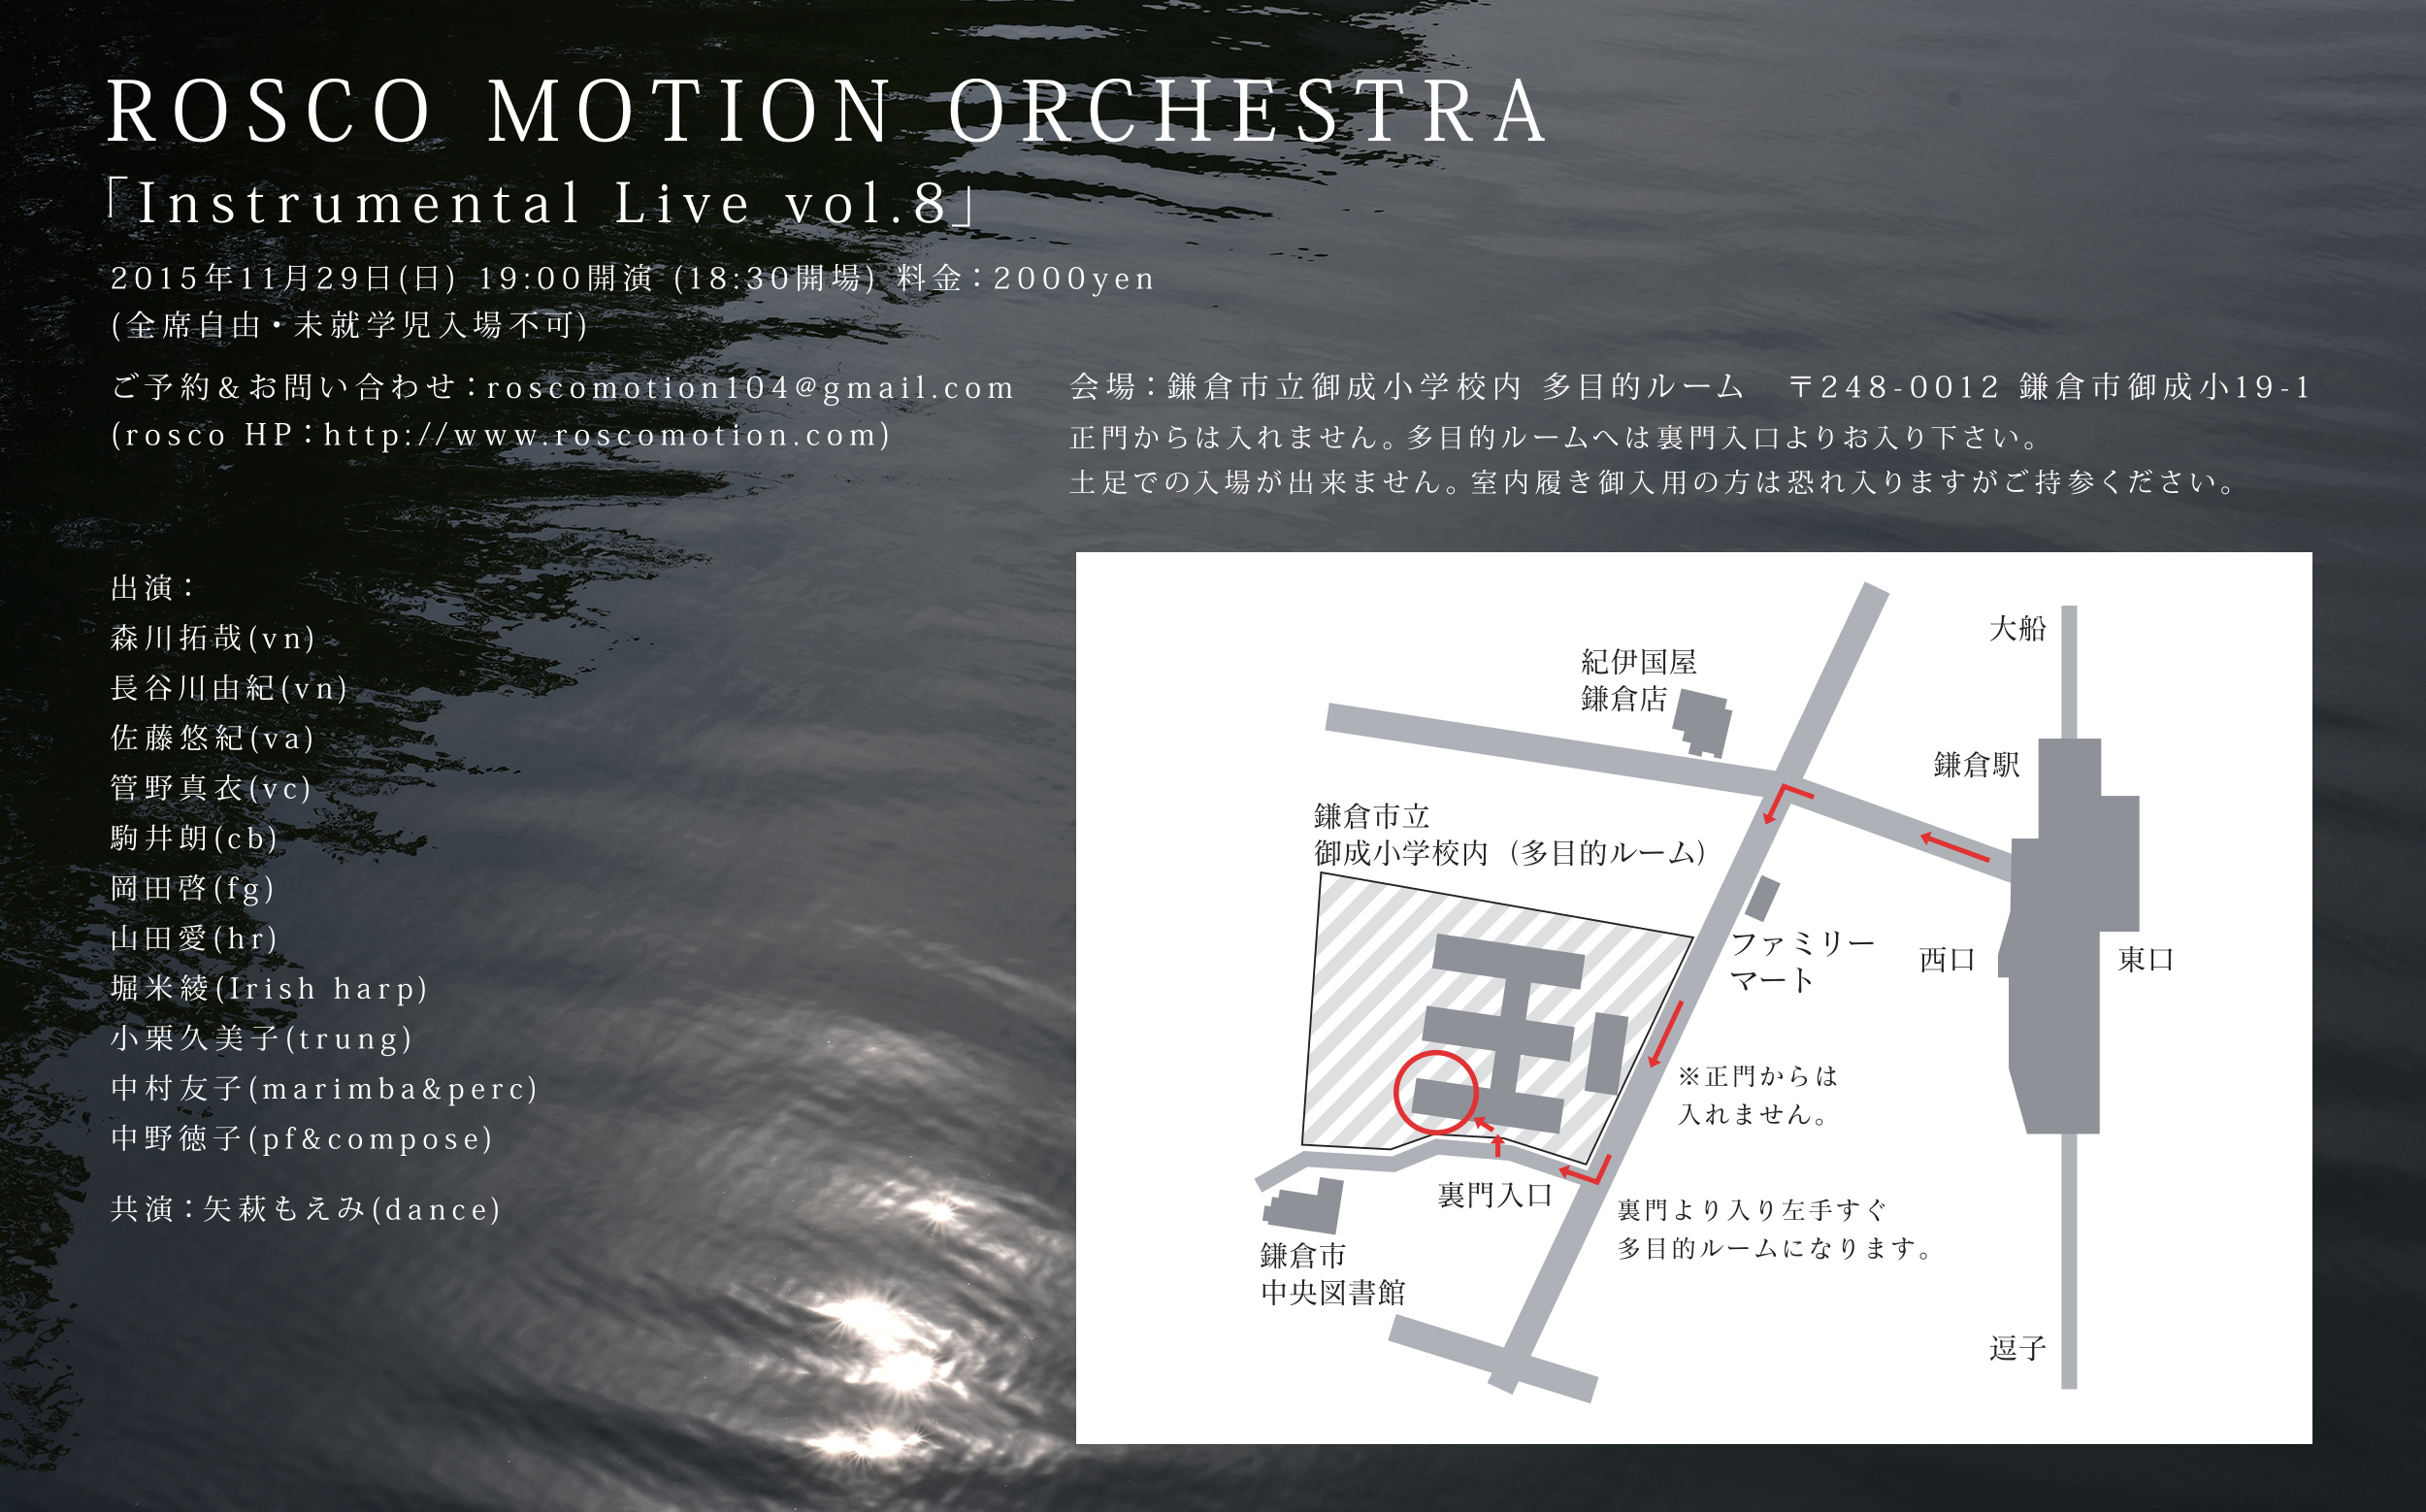 ROSCO MOTION ORCHESTRA Instrumental Live vol.8